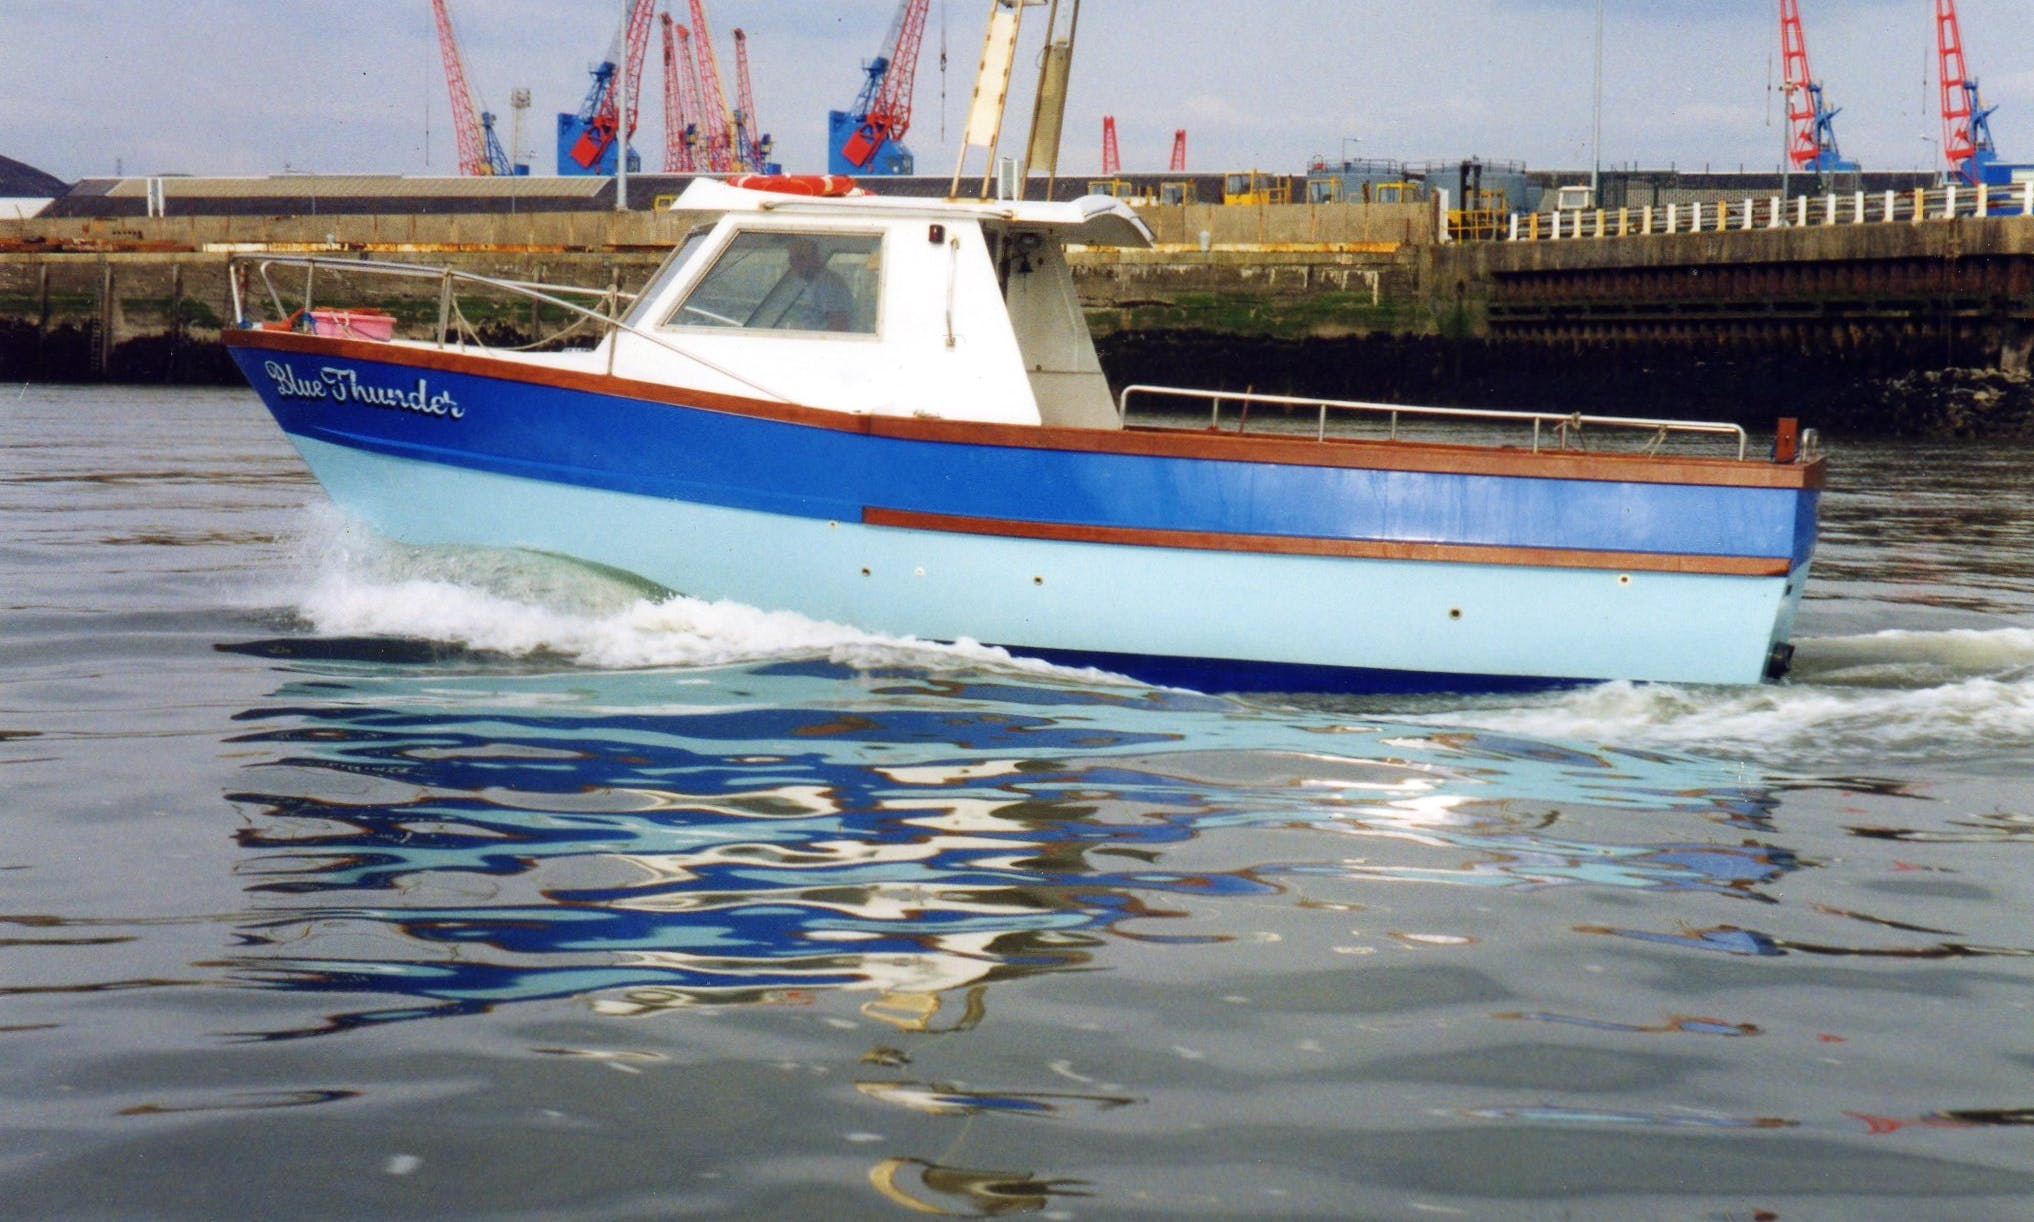 Passenger Boat Rental in Swansea